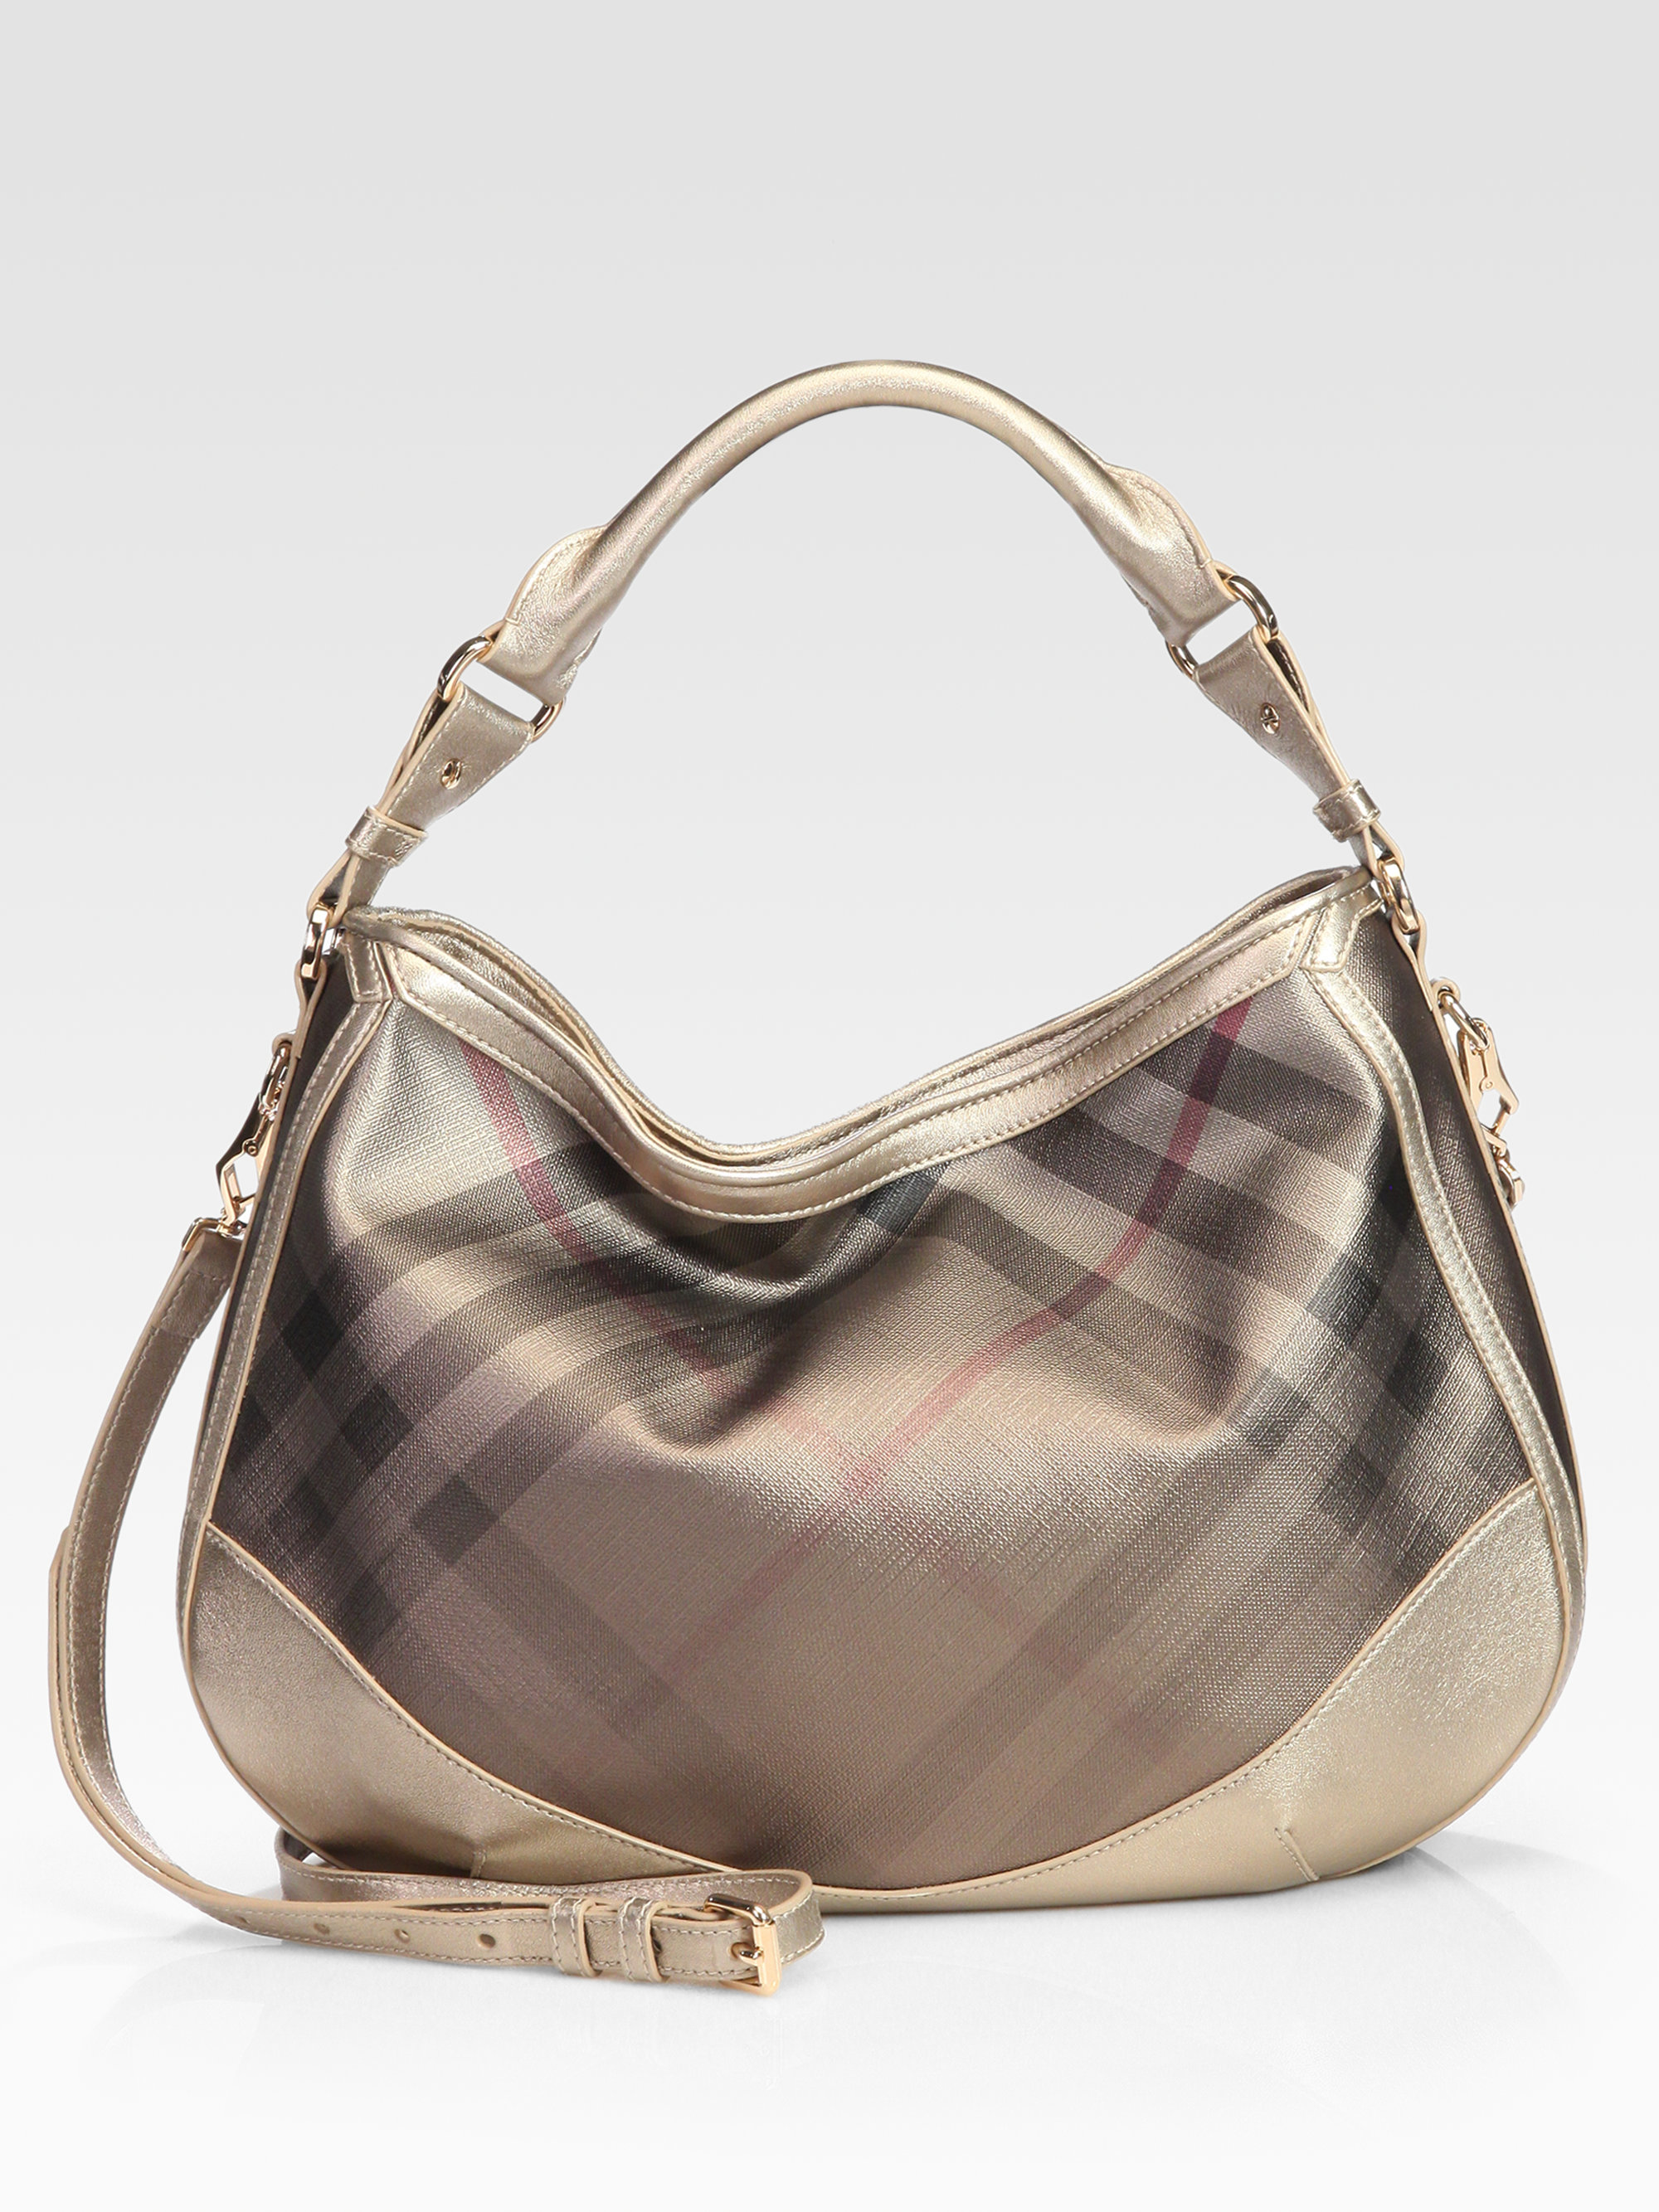 30ead1850d5c Lyst - Burberry Check Canvas and Leather Hobo Bag in Natural